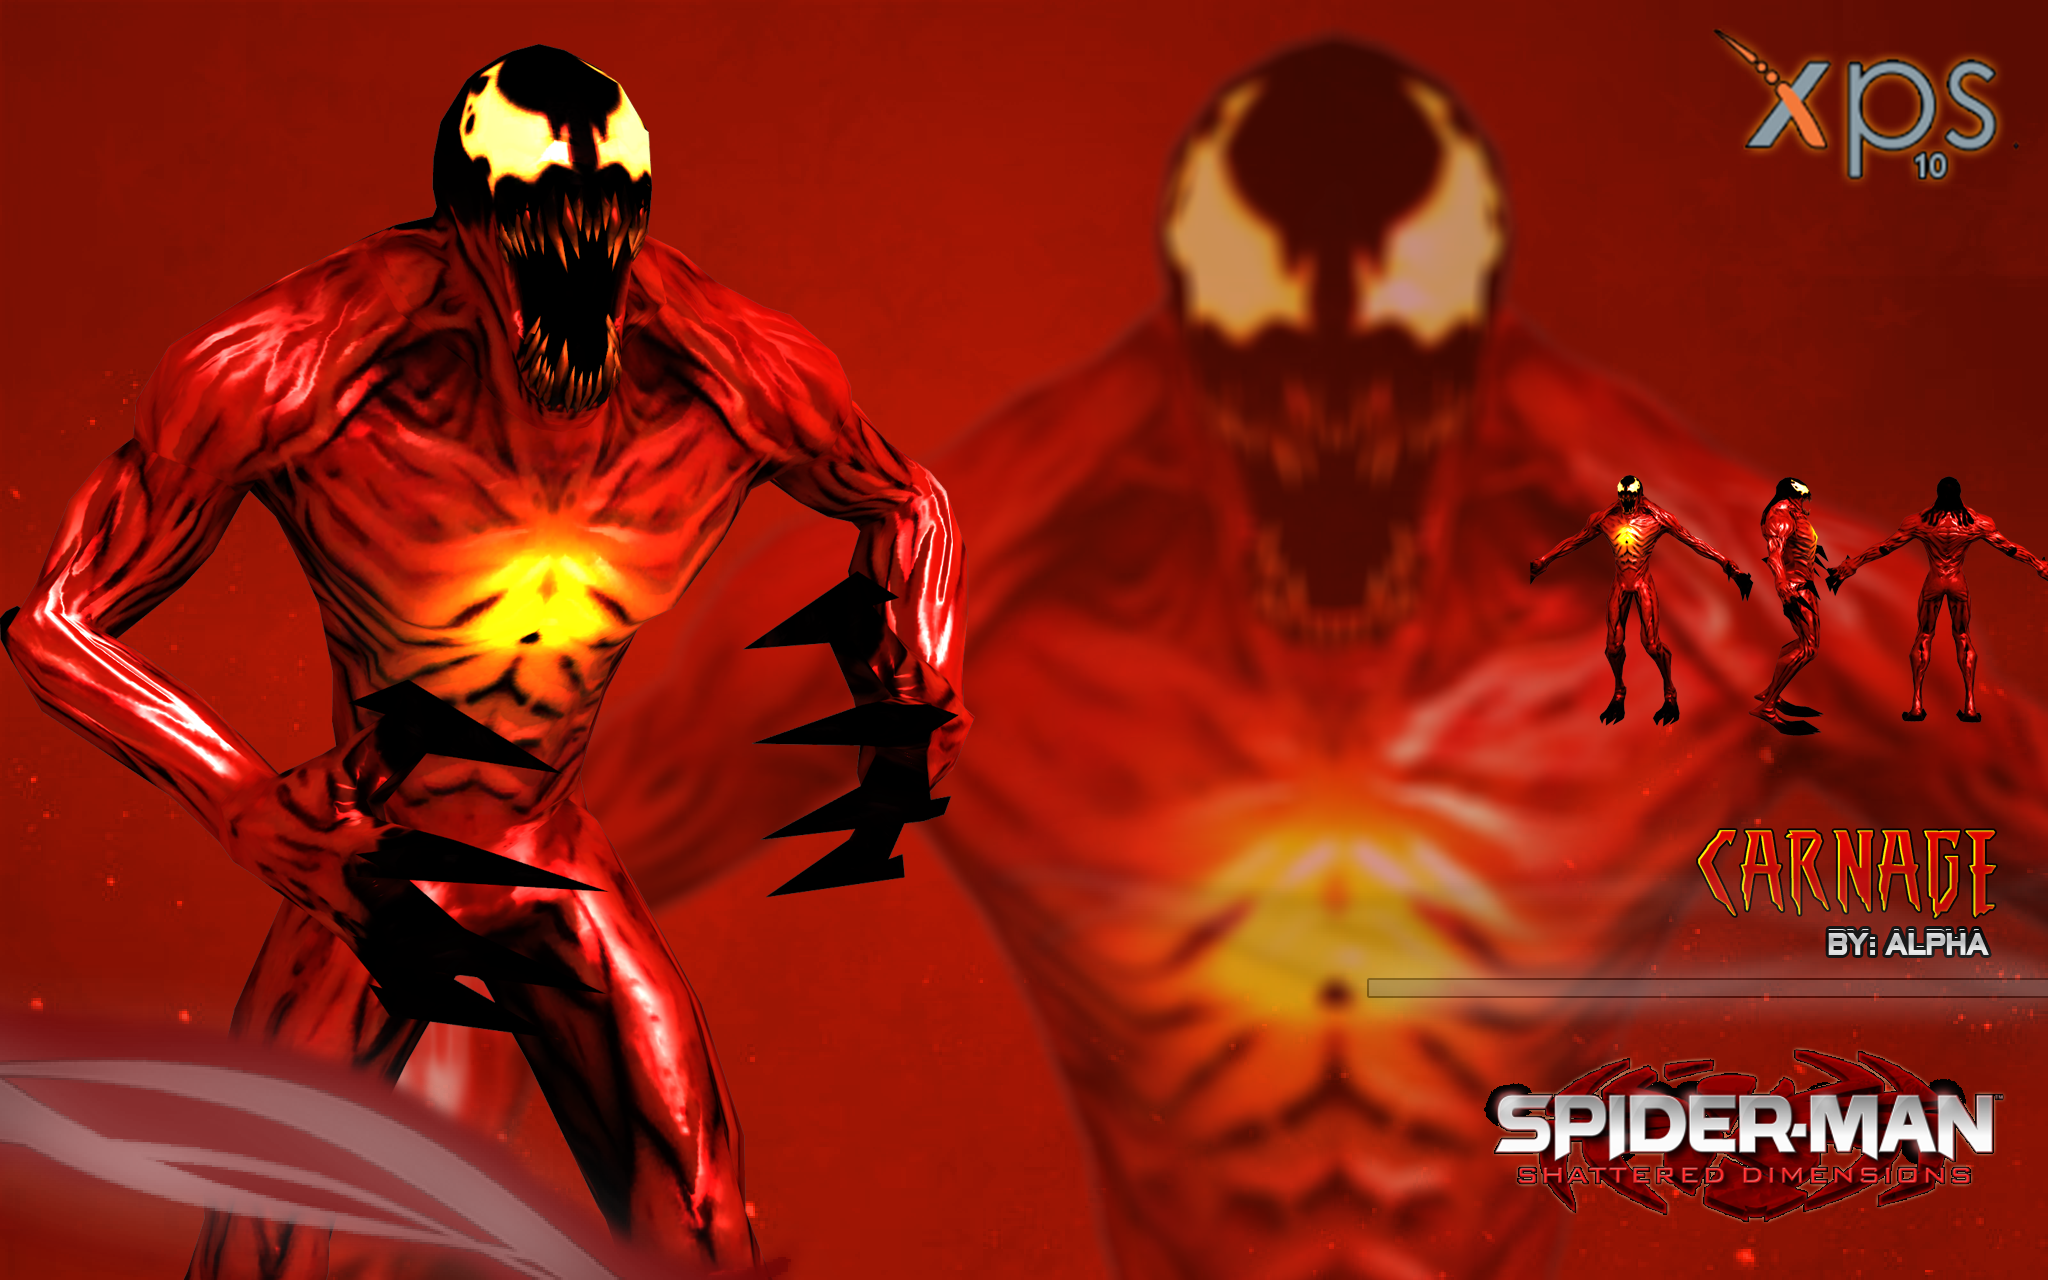 Spider man shattered dimensions villains - photo#22